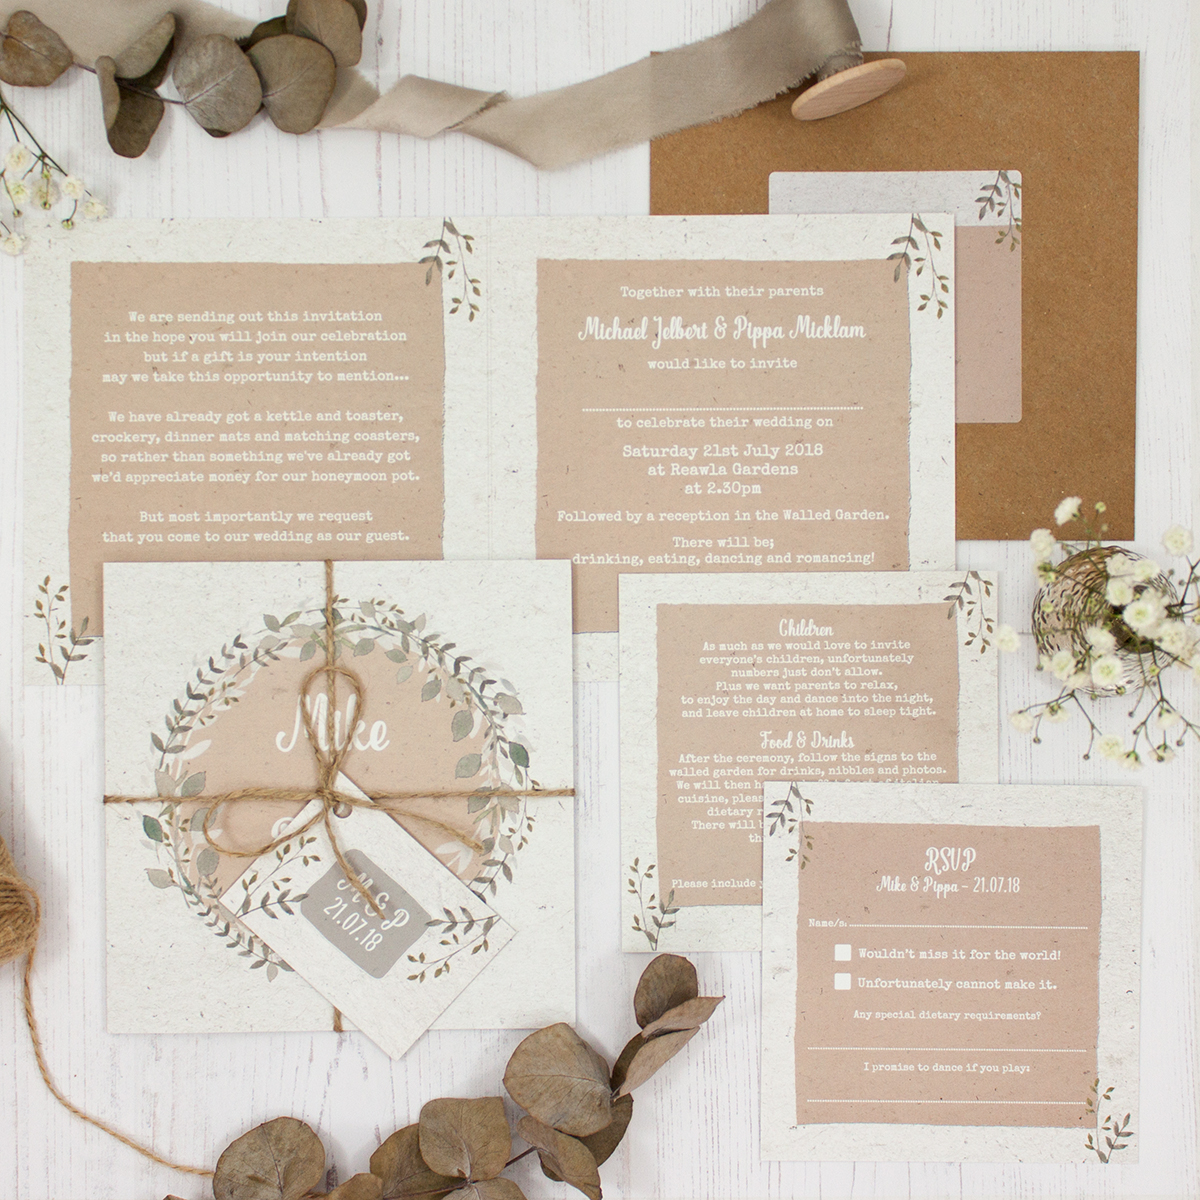 Botanical Garden Wedding showing invitation